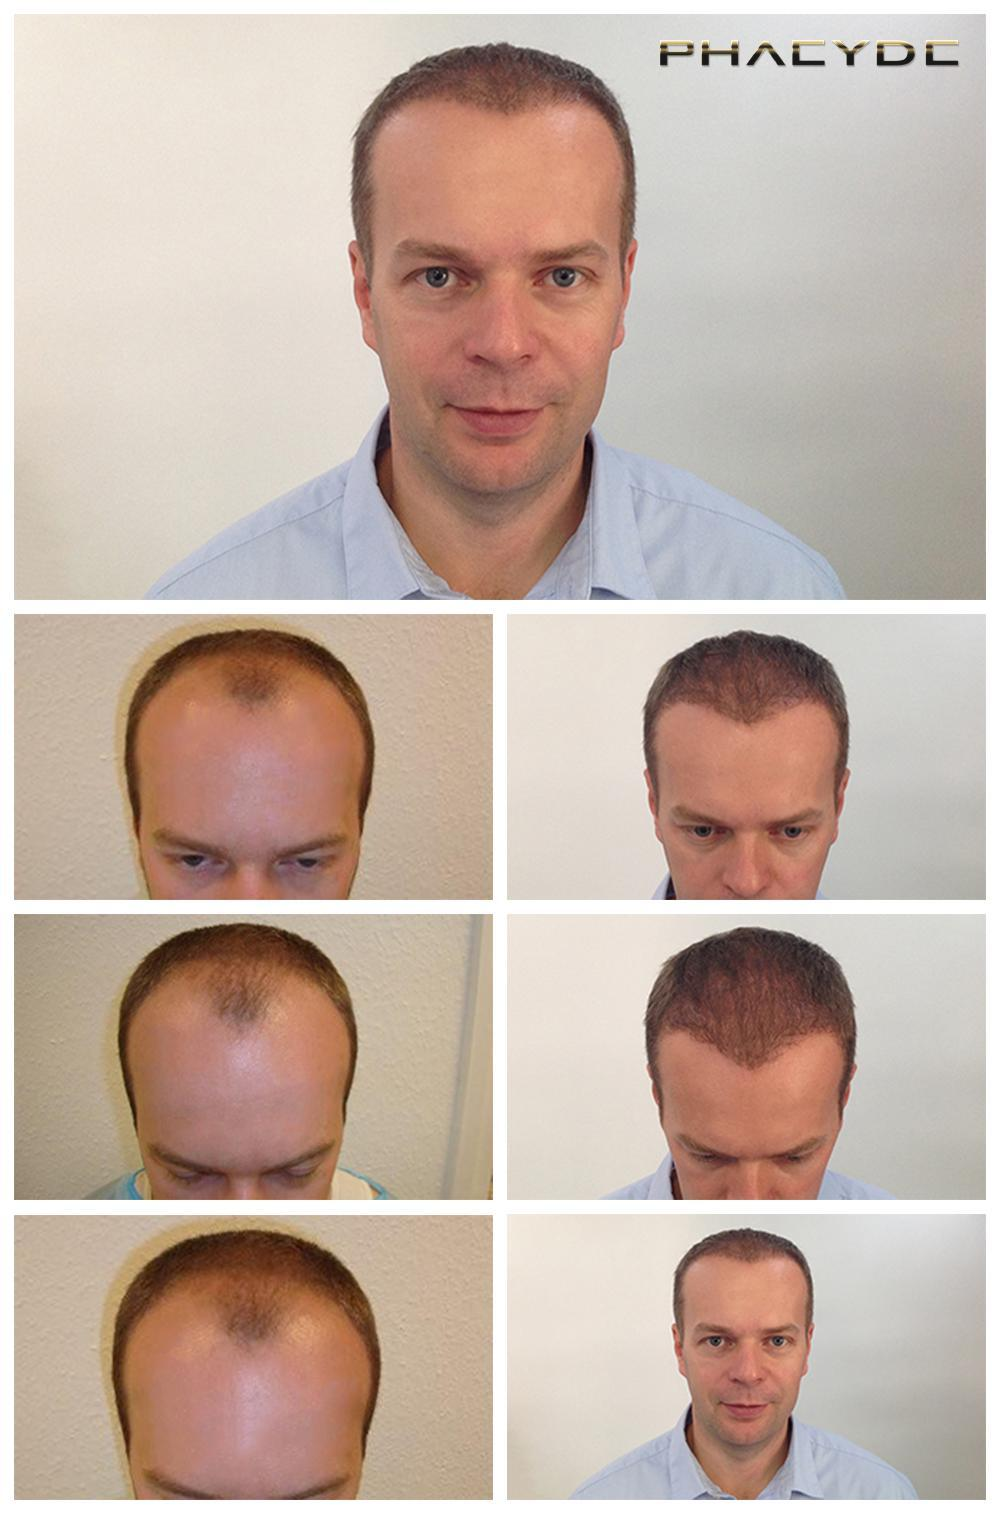 Hair transplant fue results before after photos thomas lajtos - PHAEYDE Clinic